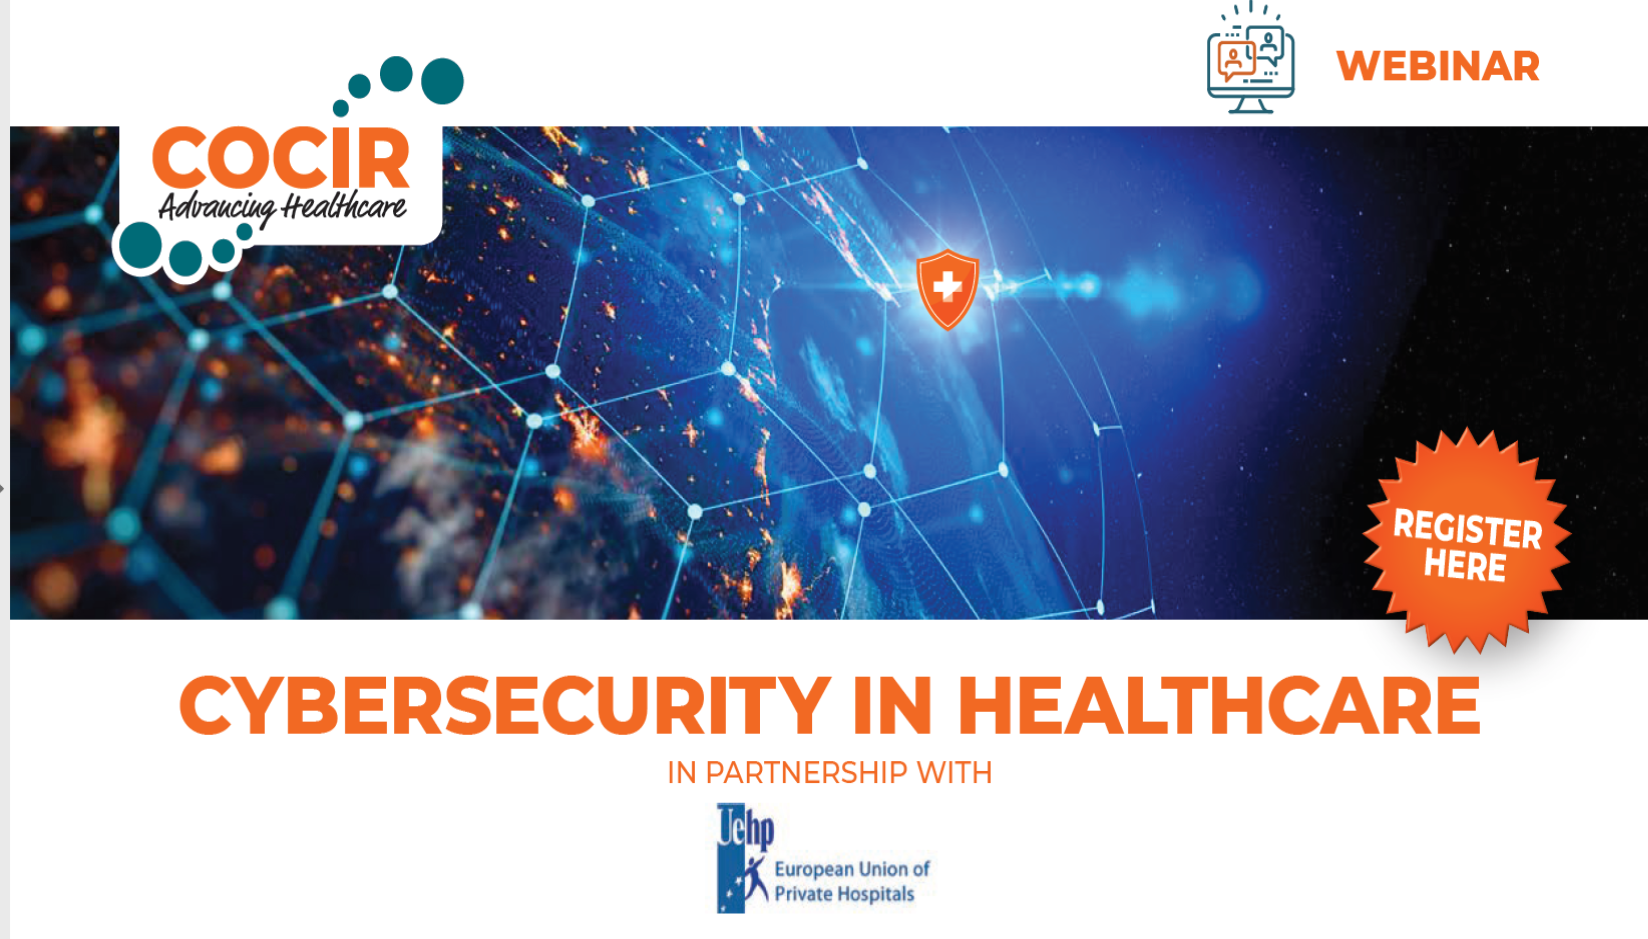 INVITATION – COCIR/UEHP webinar on CYBERSECURITY IN HEALTHCARE, 30 June 2020 – 14h-15.30h